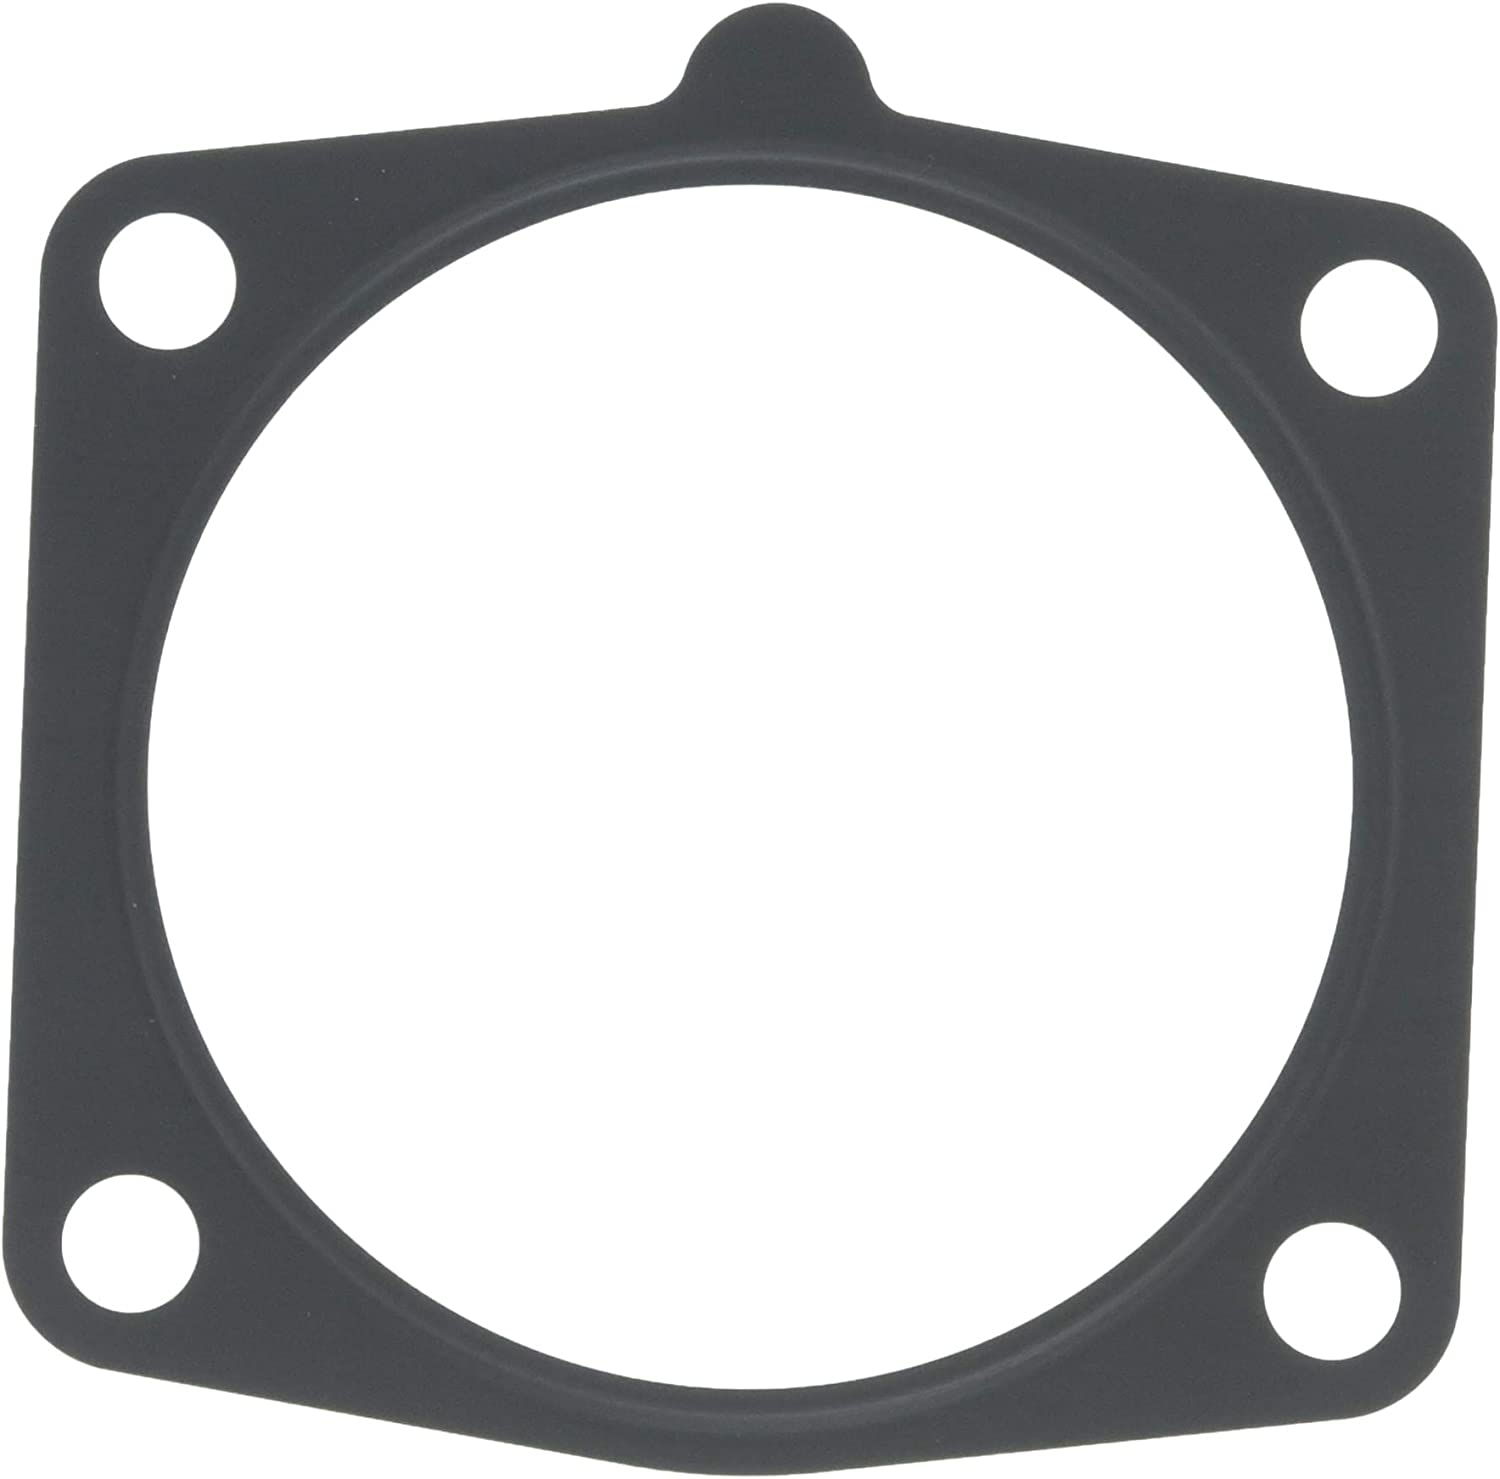 MAHLE G31959 Fuel Injection Gasket NEW before Max 69% OFF selling ☆ Mounting Throttle Body